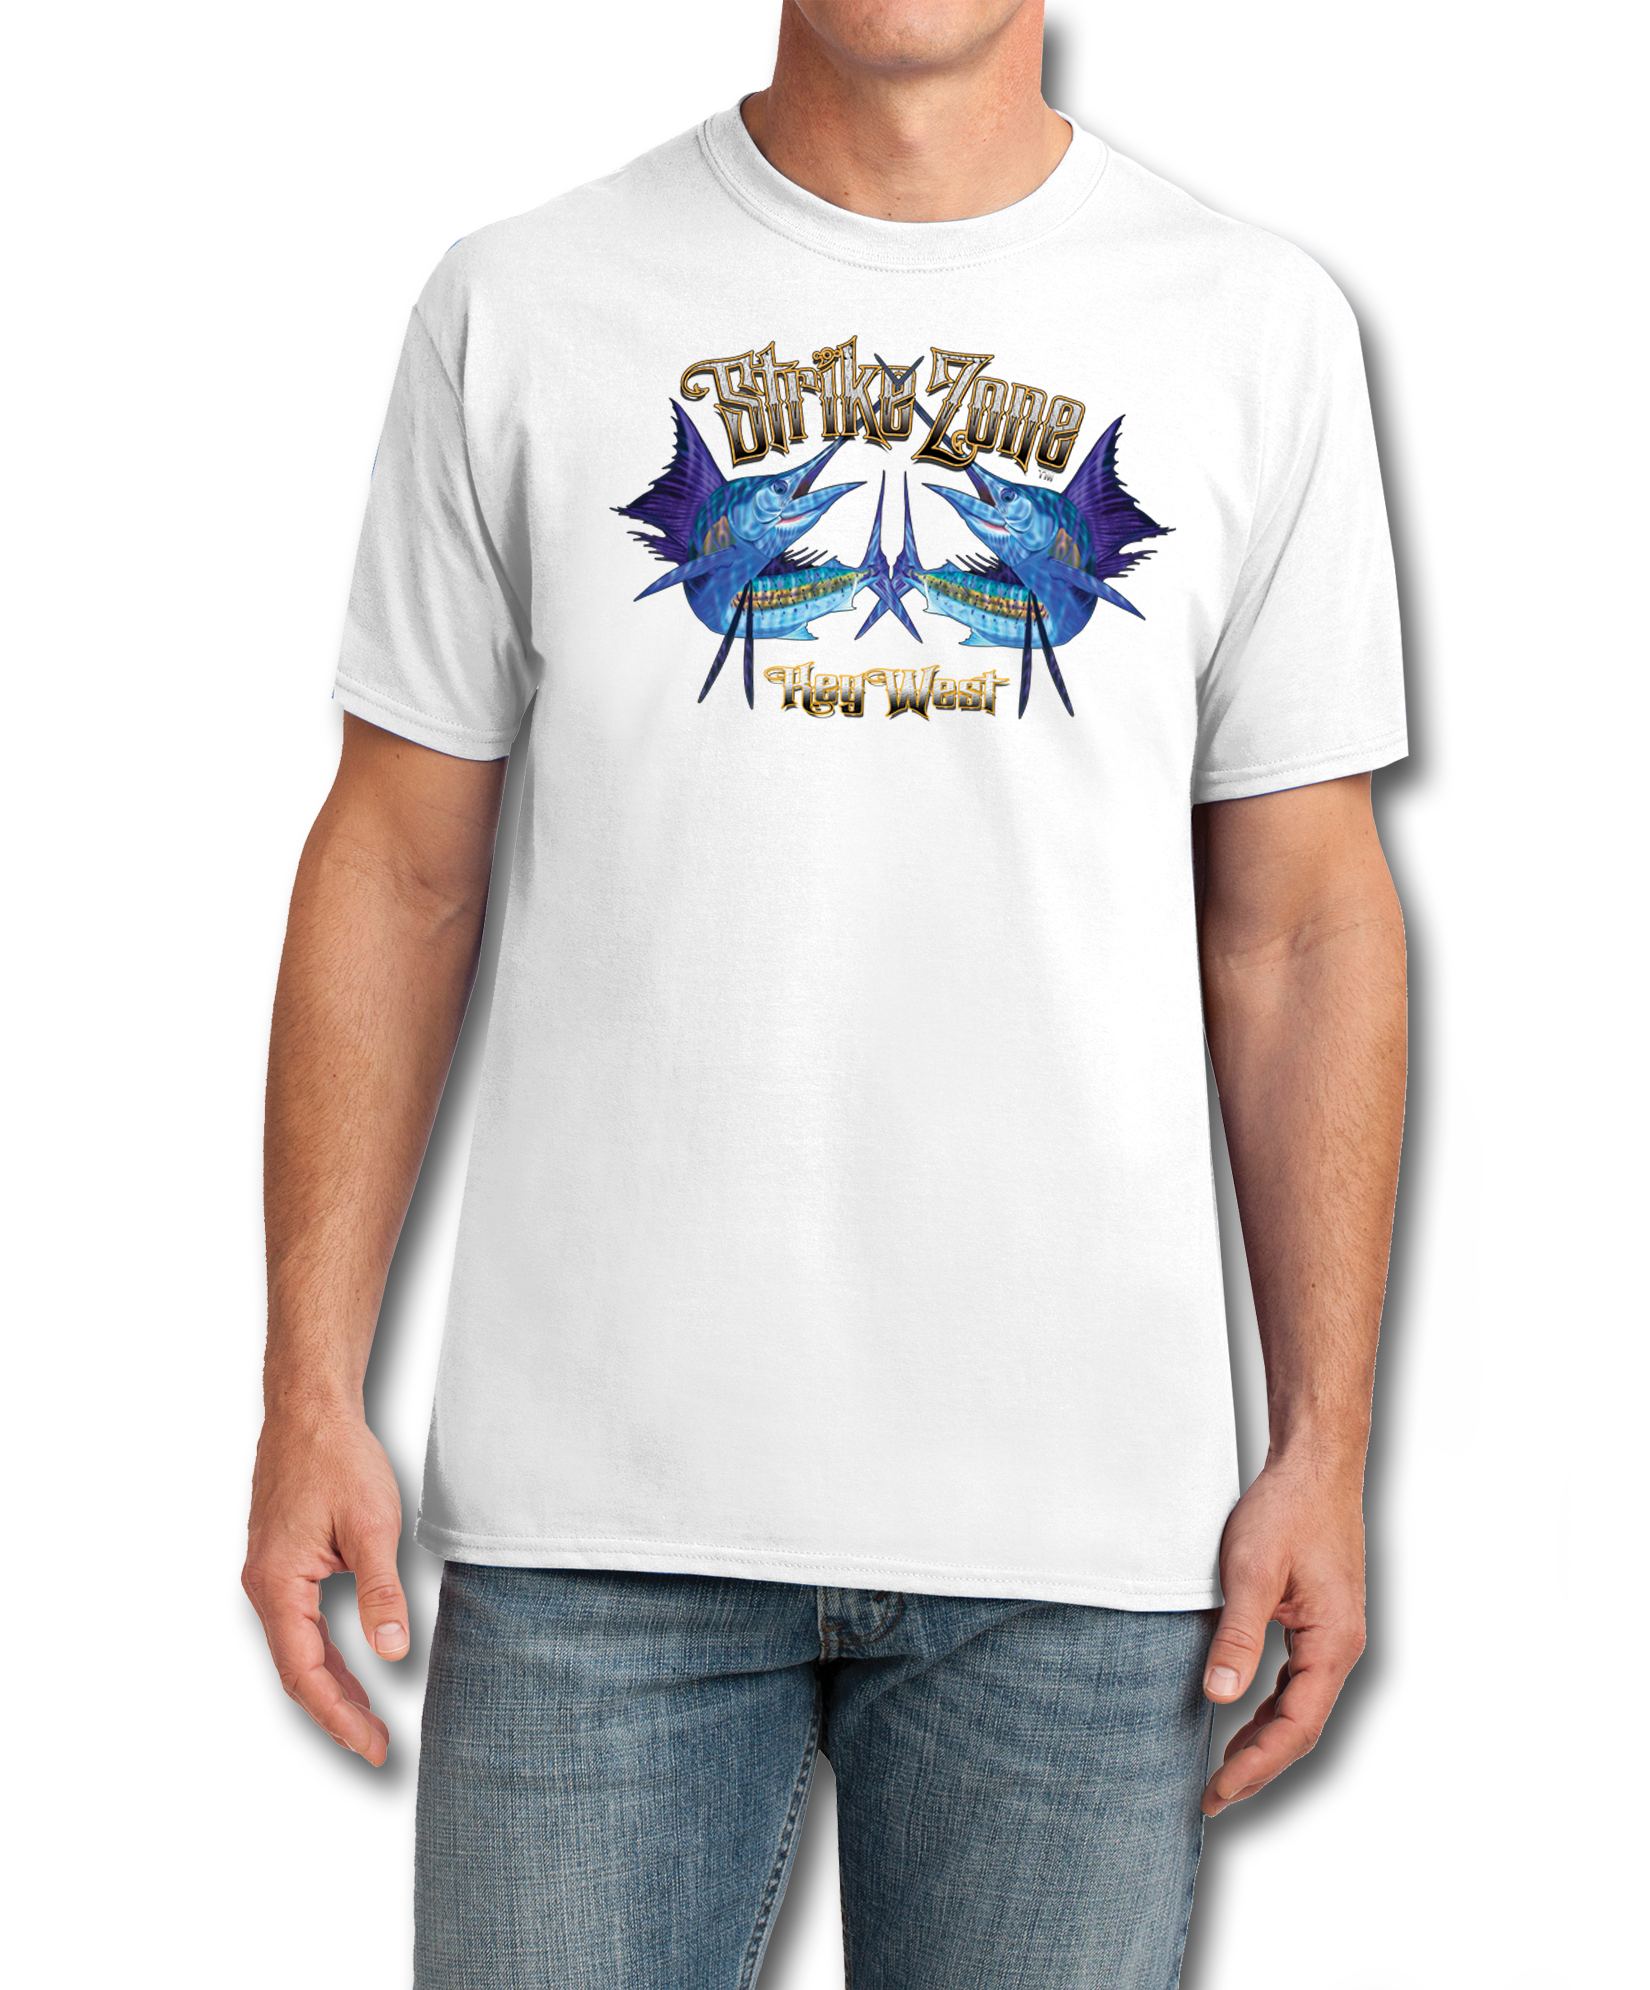 t-shirt-jason-mathias-cotton-white-sailfish-front-chest.png